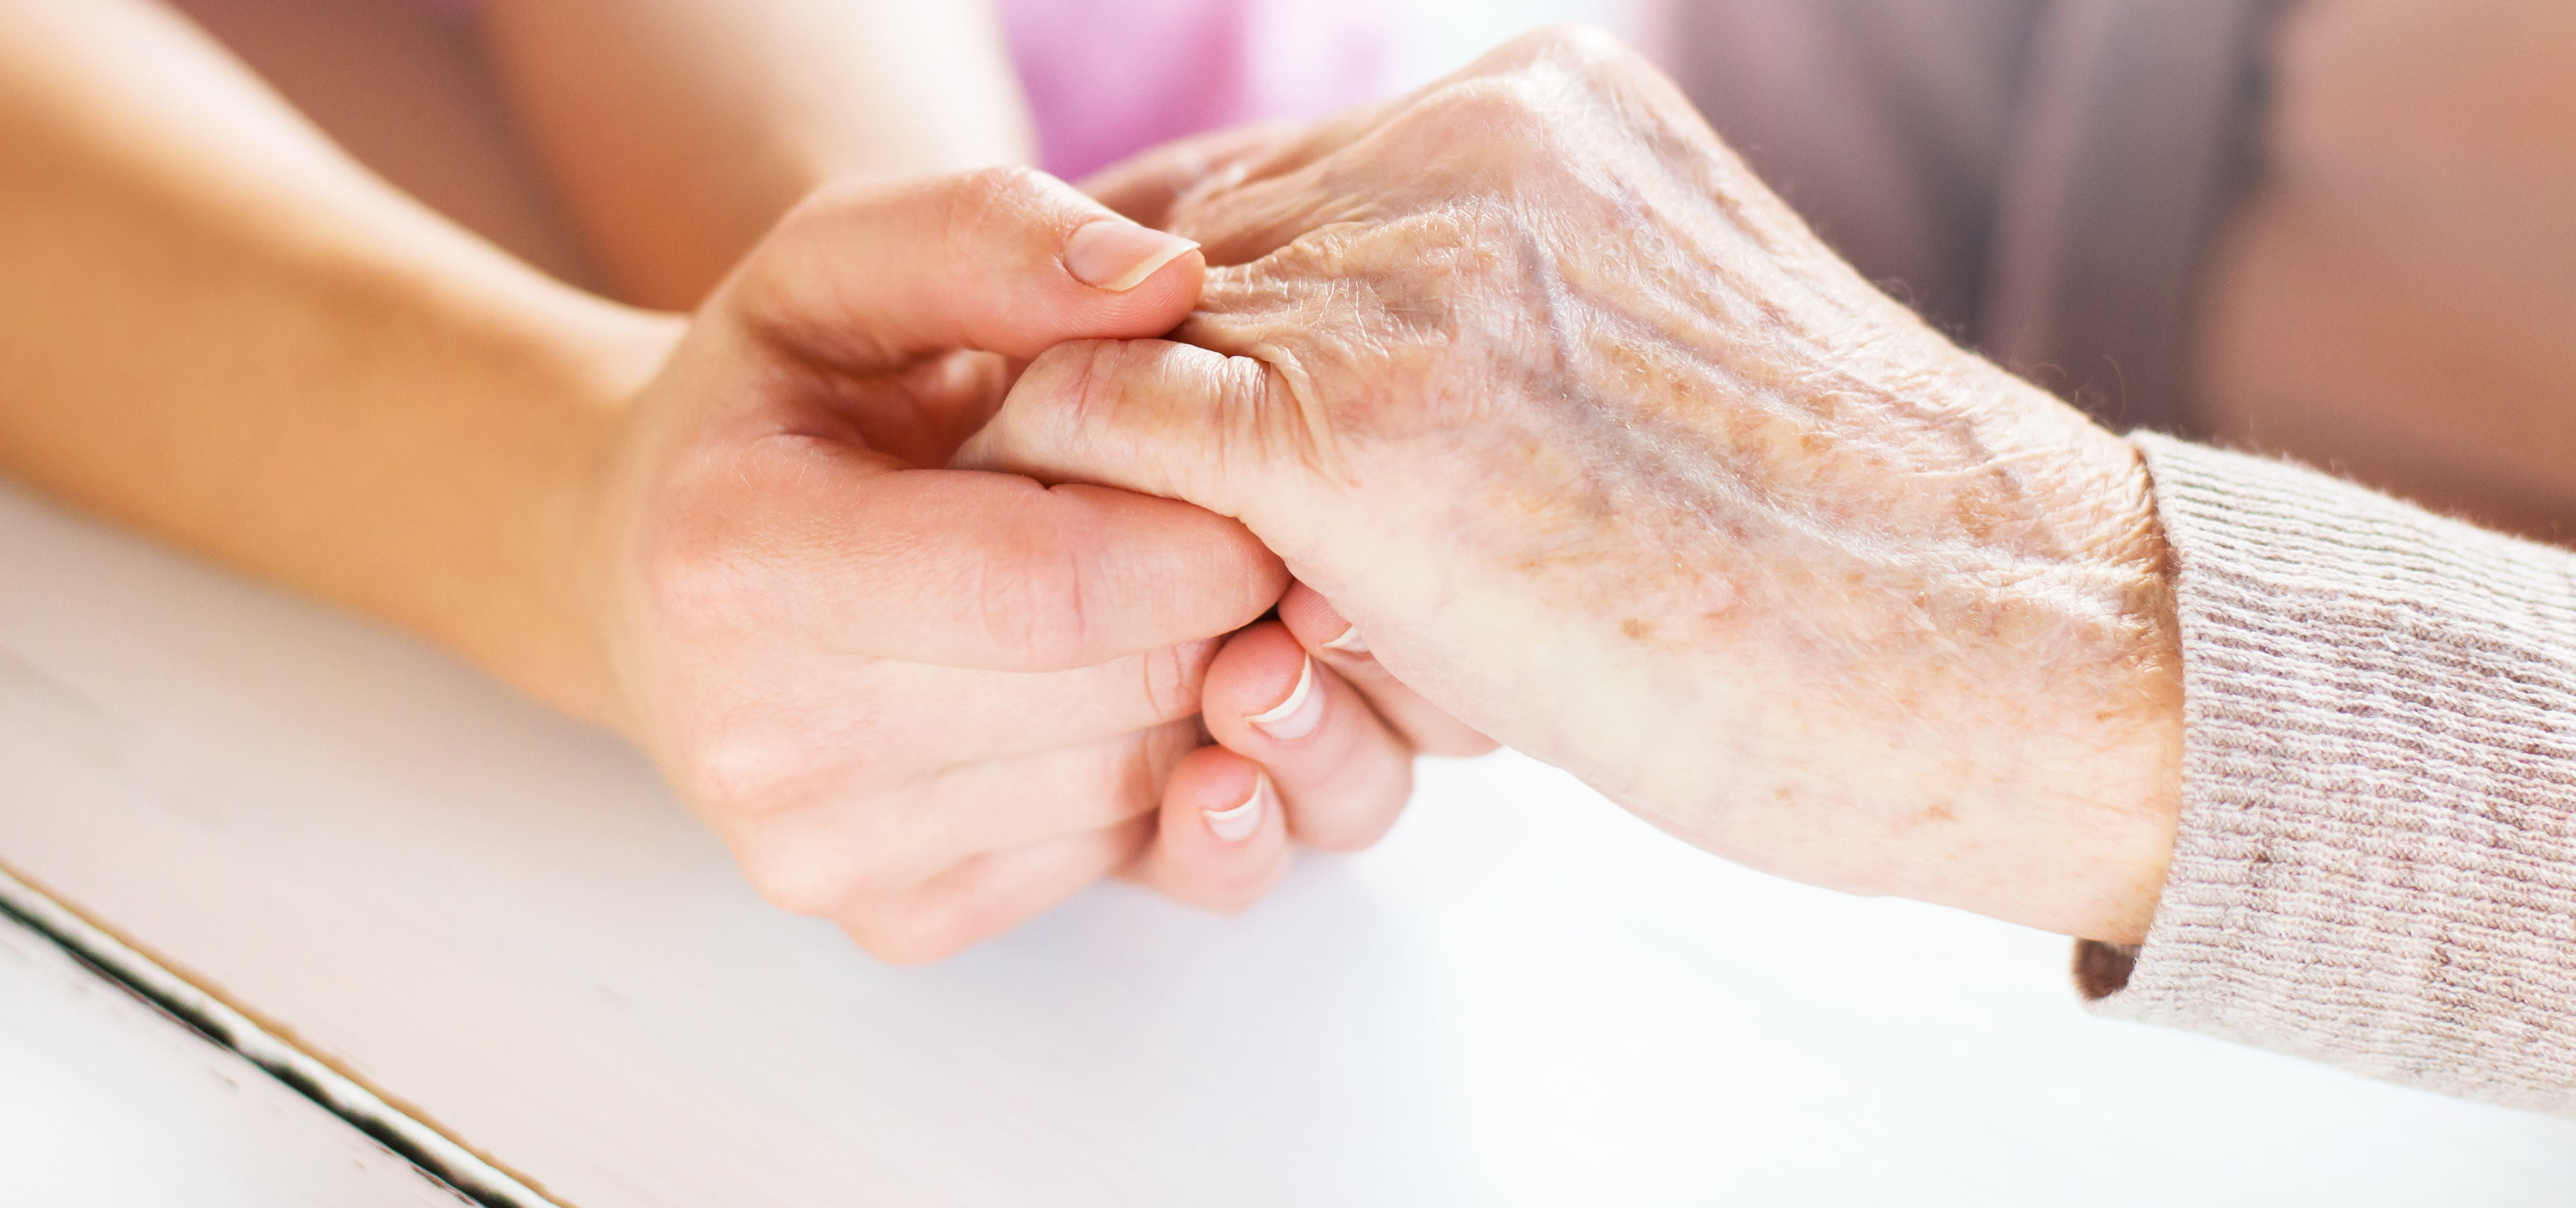 Solving the UK's care funding crisis one person at a time